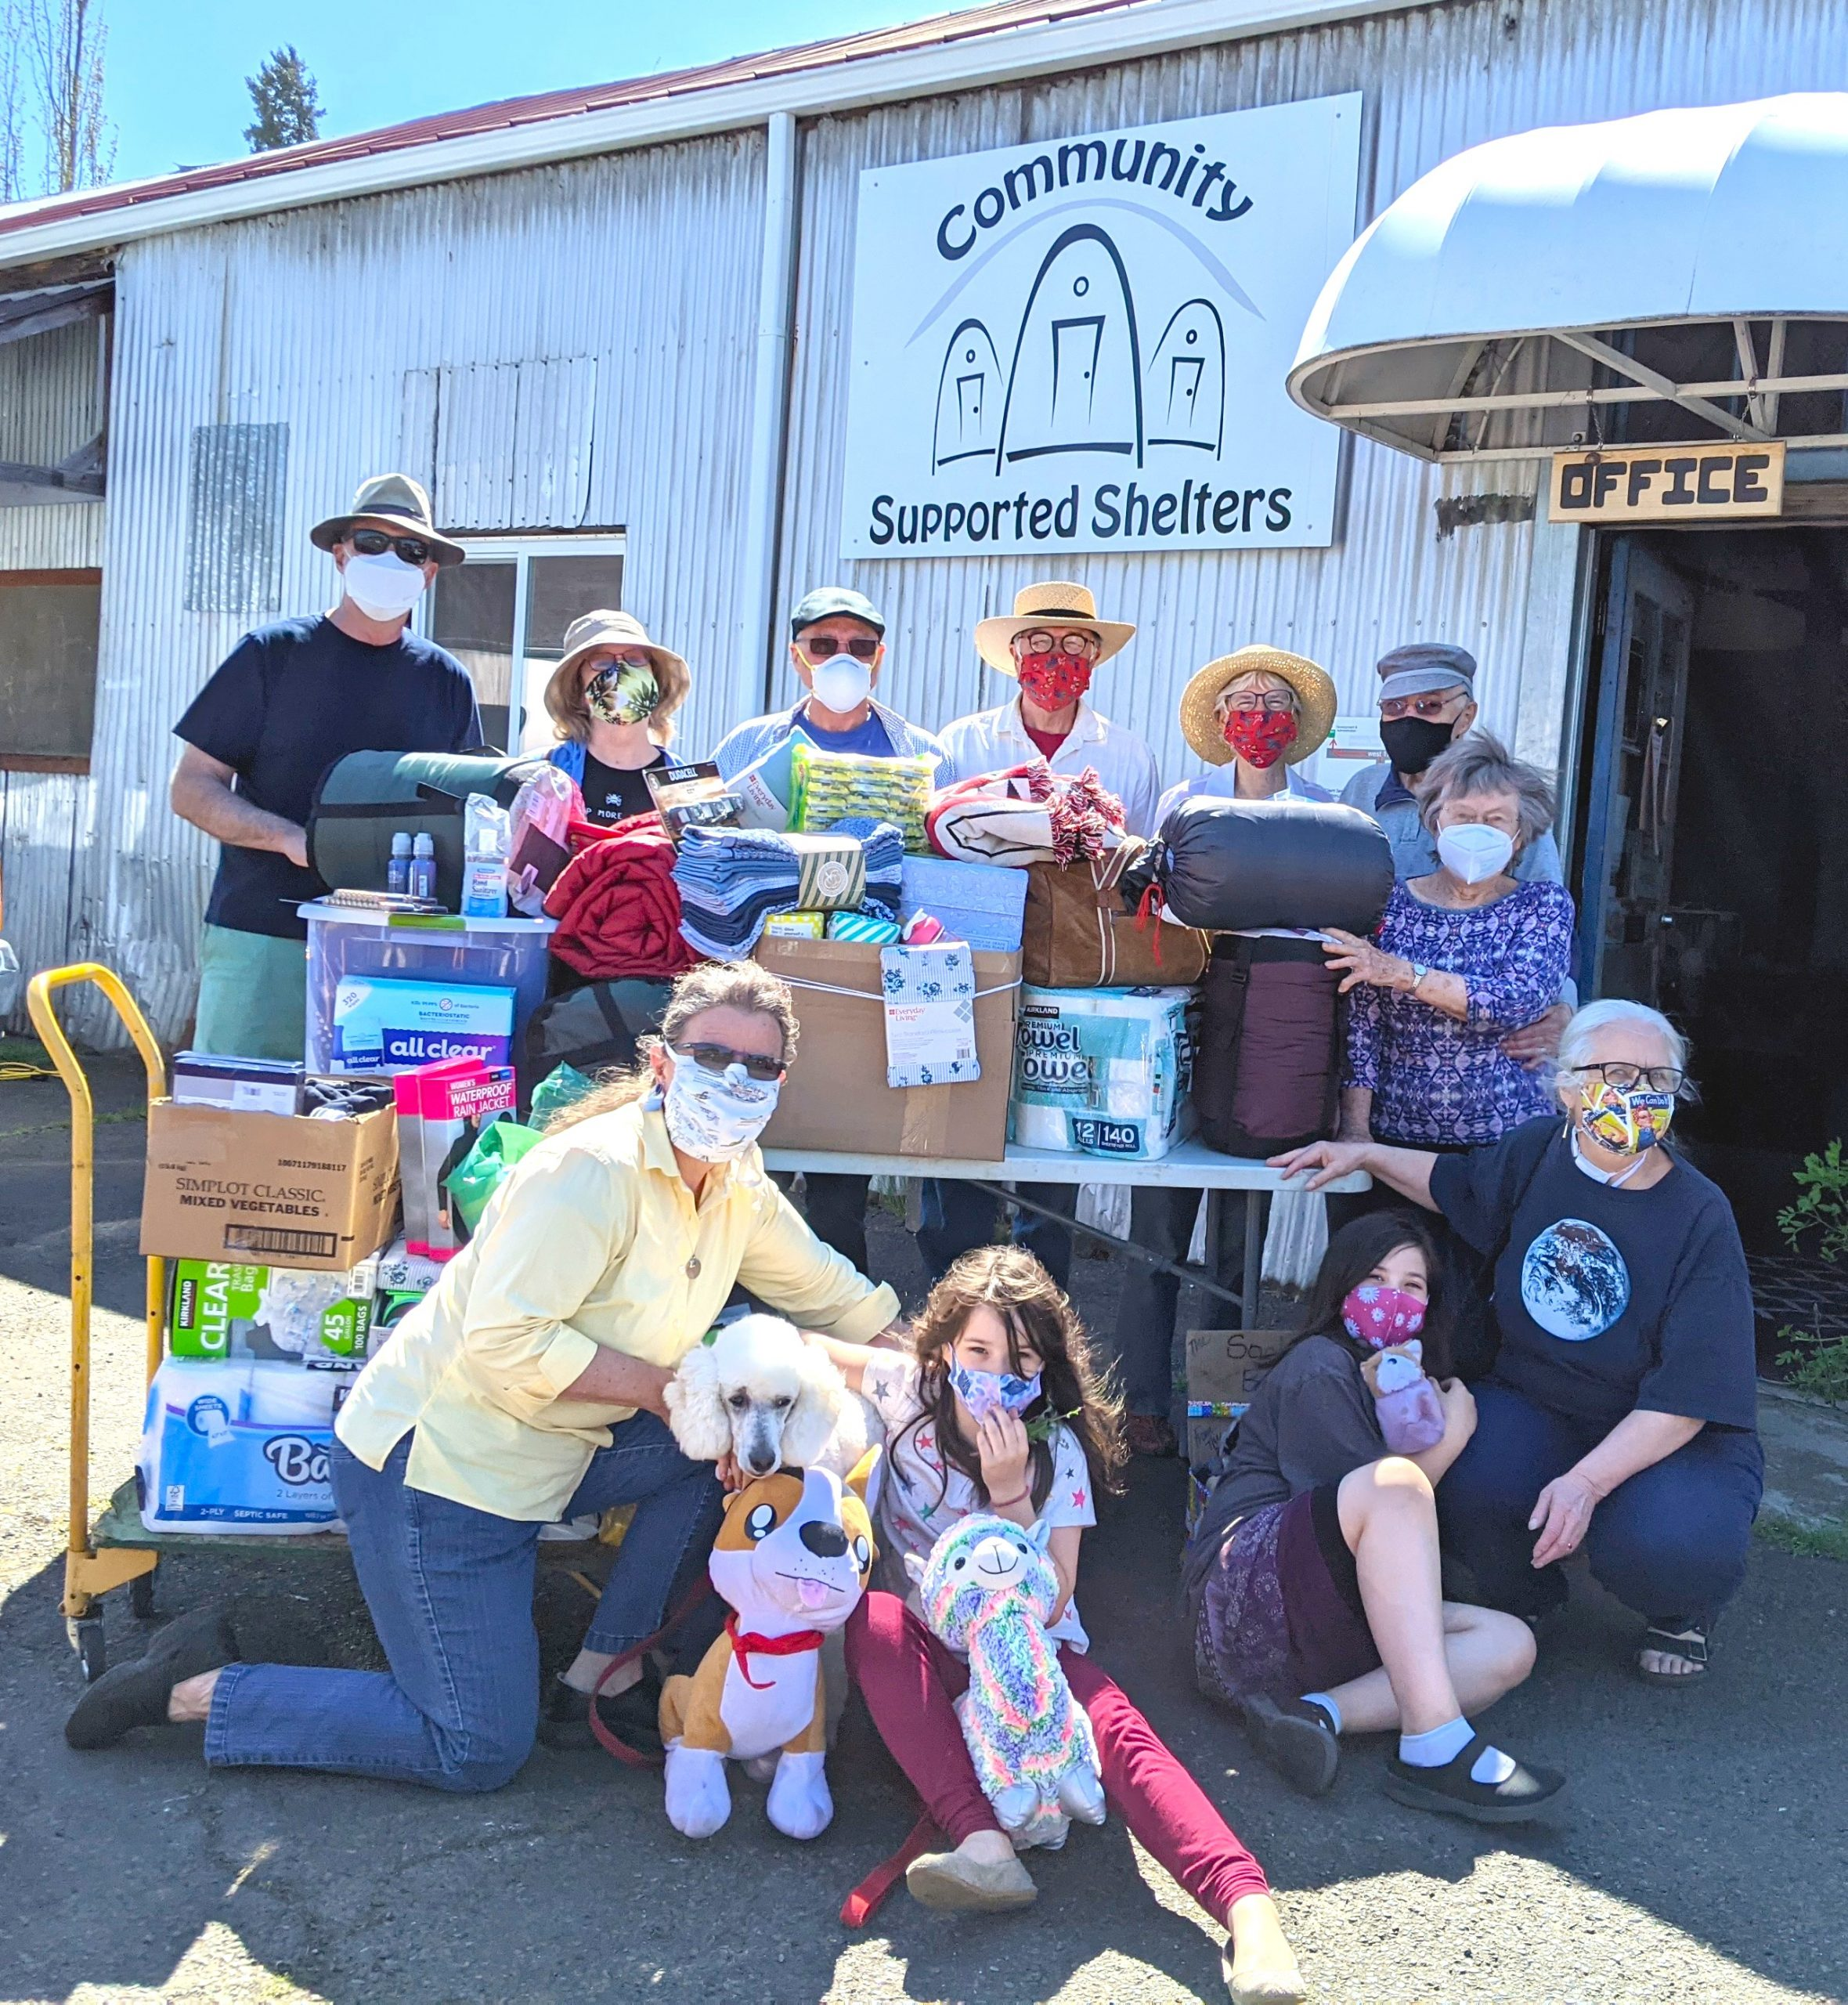 A family donating needed survival gear for the residents of Community Supported Shelters